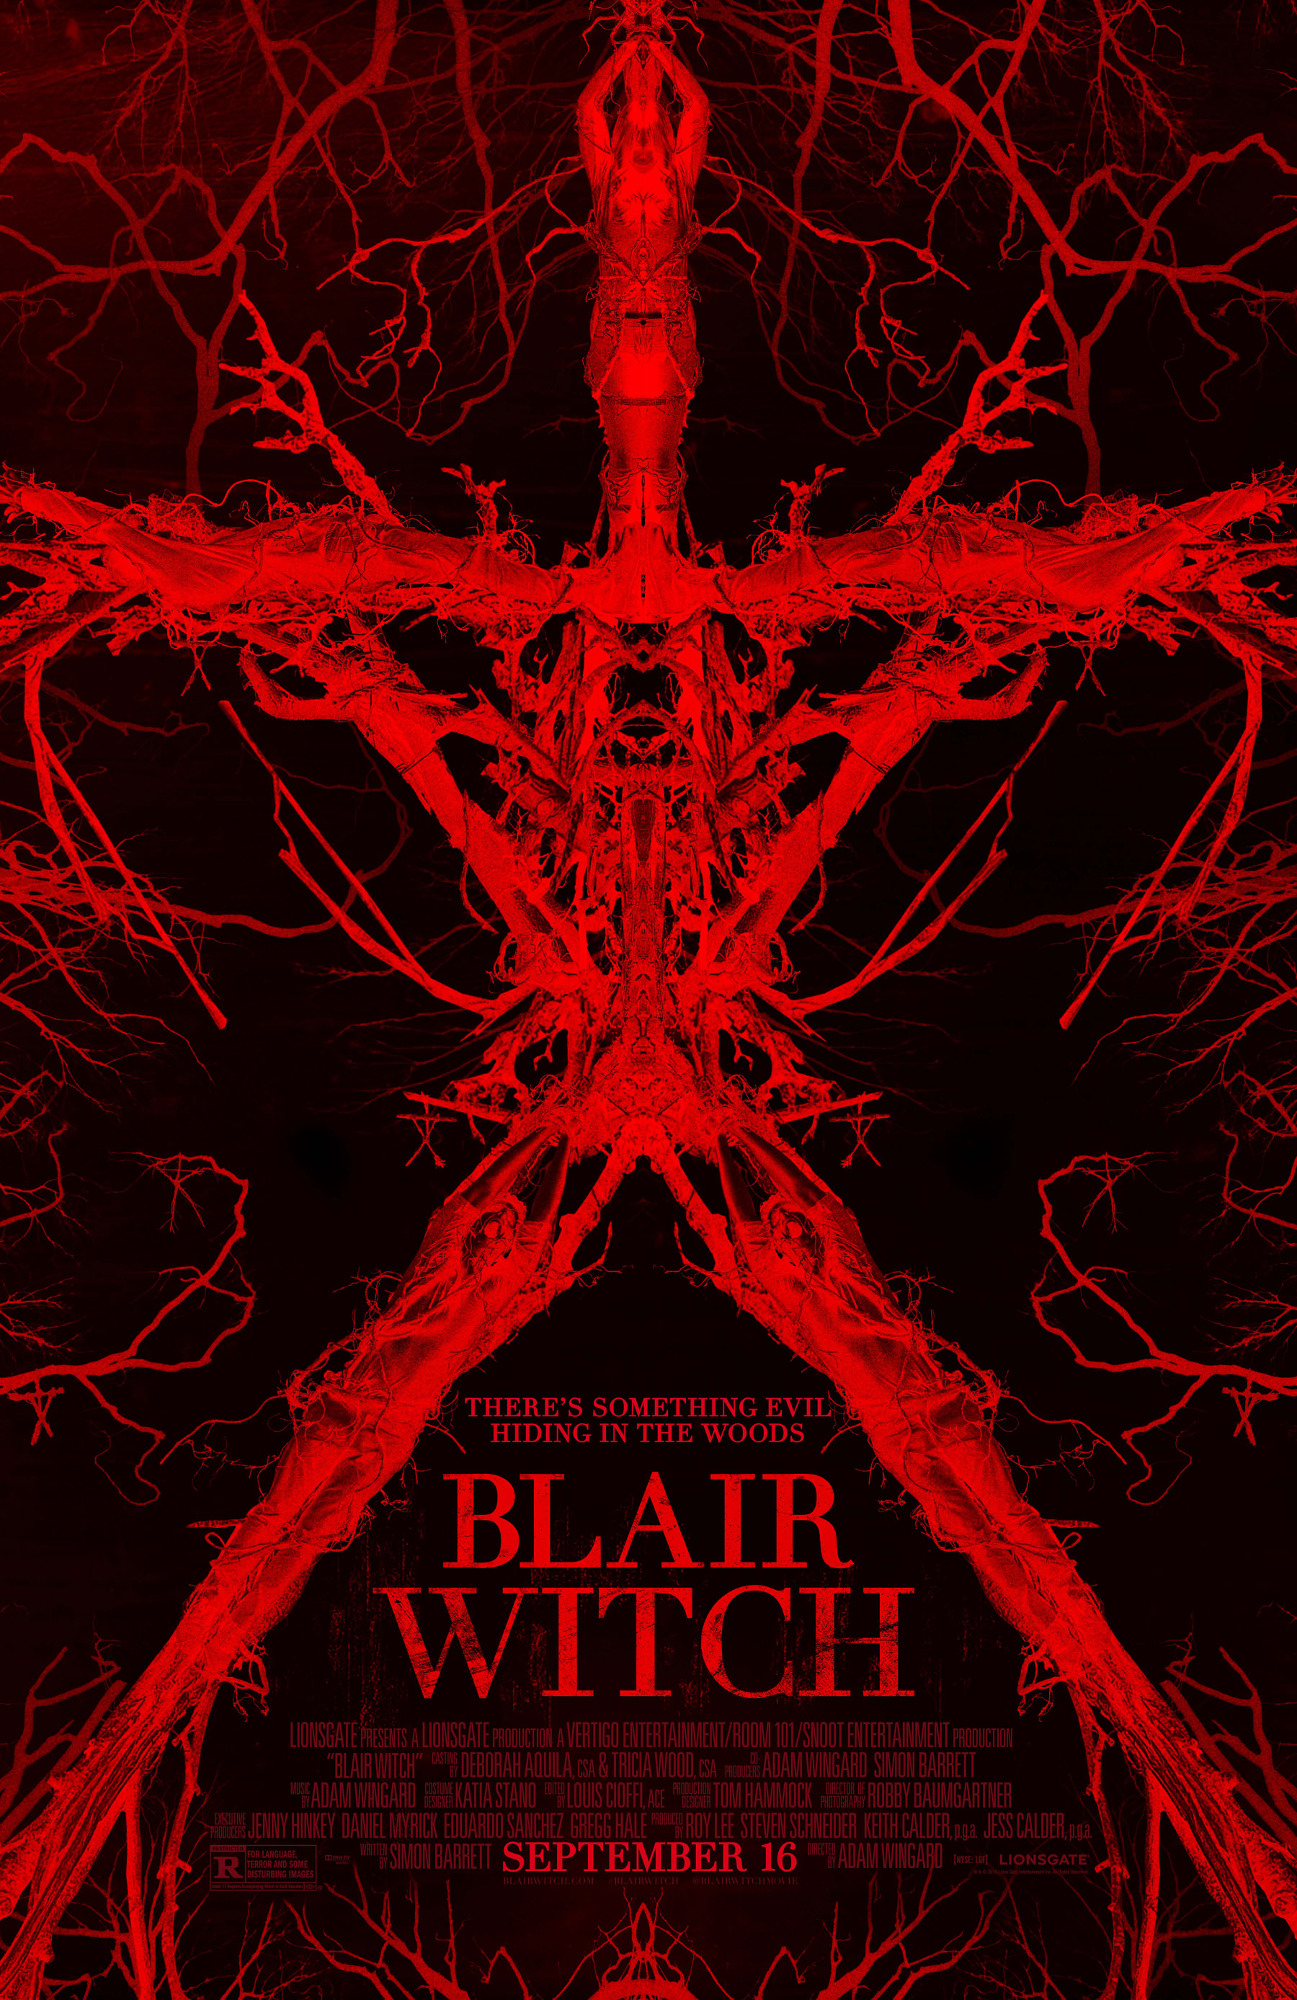 blair witch project movie The blair witch project sequel blair witch has a number of connections to the original, which all come together in its frantic final scenes.